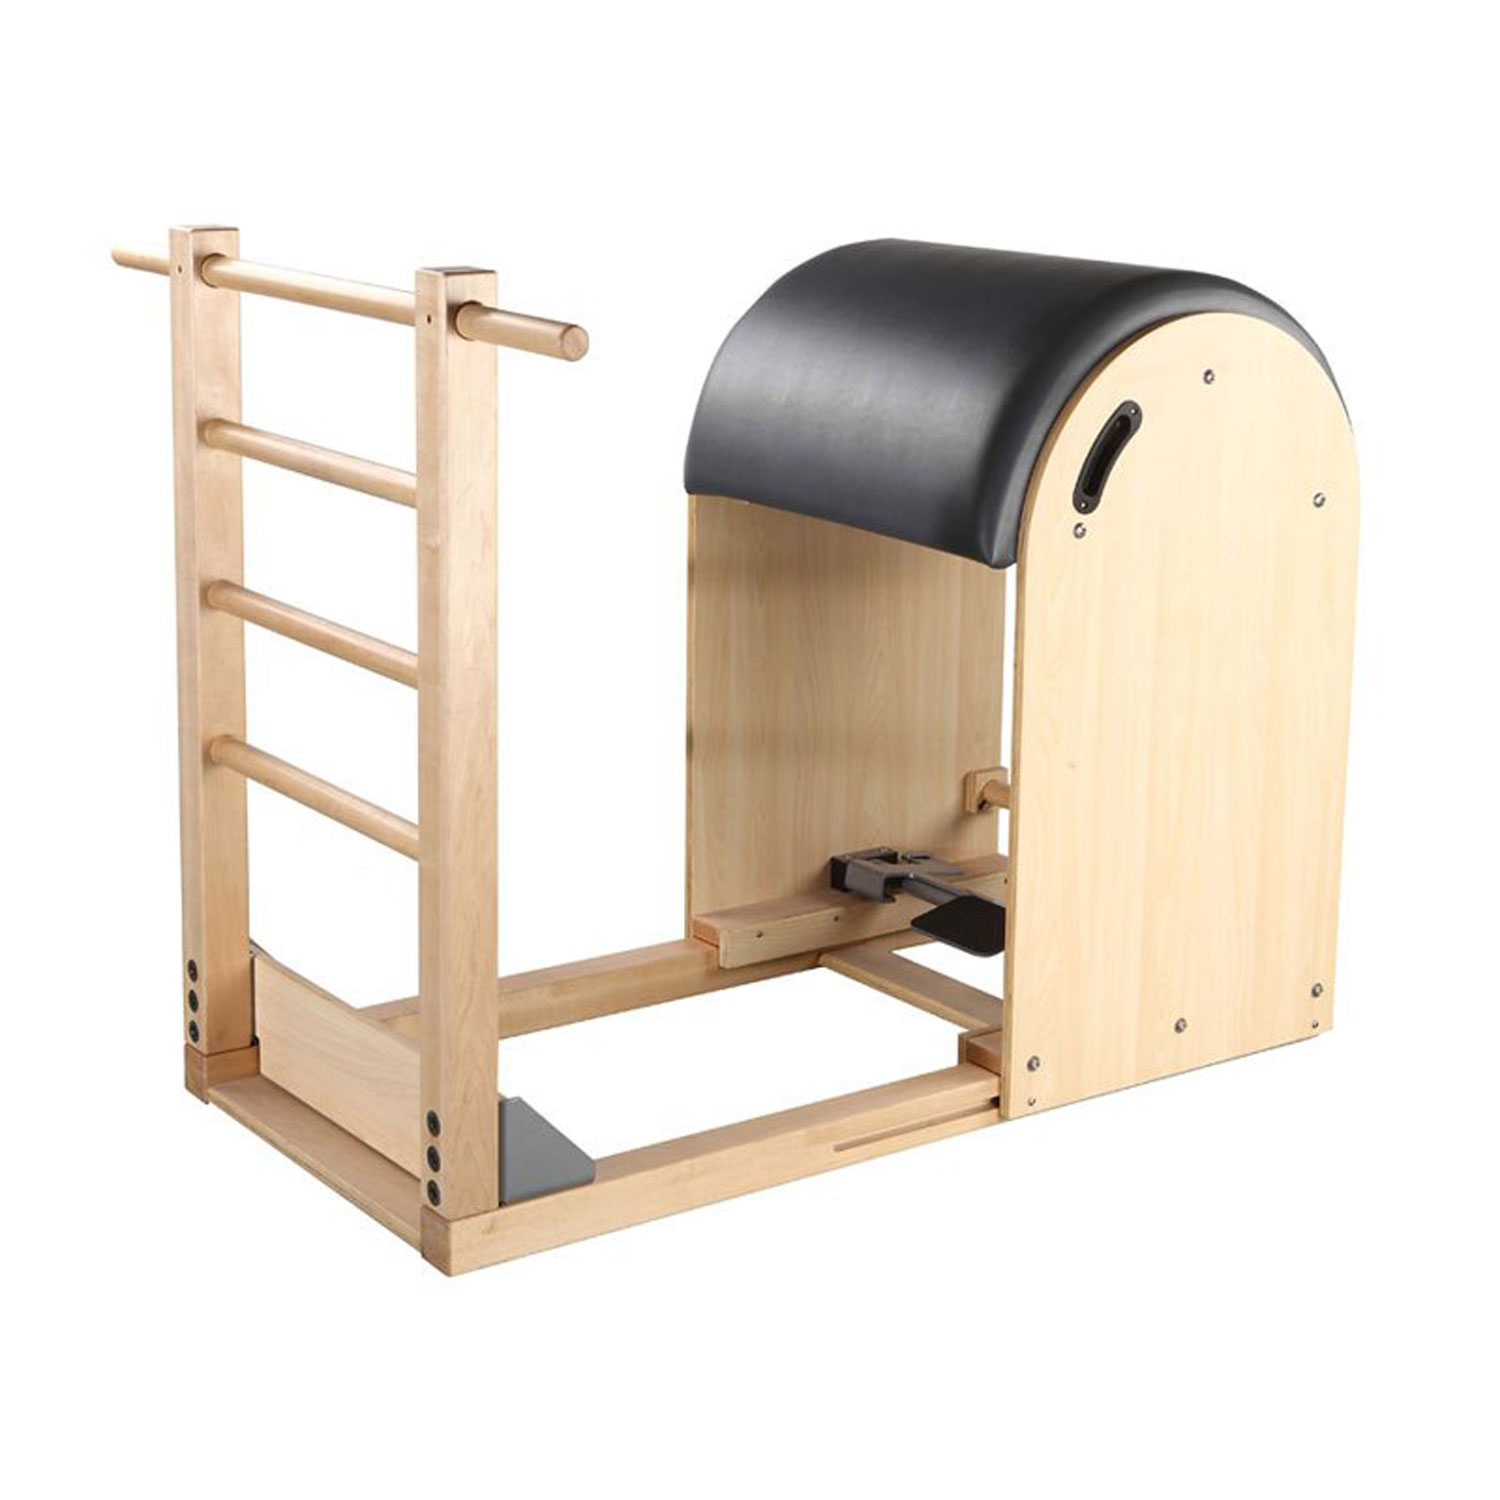 PRO款 普拉提梯桶 Pilates Wood Ladder Barrel